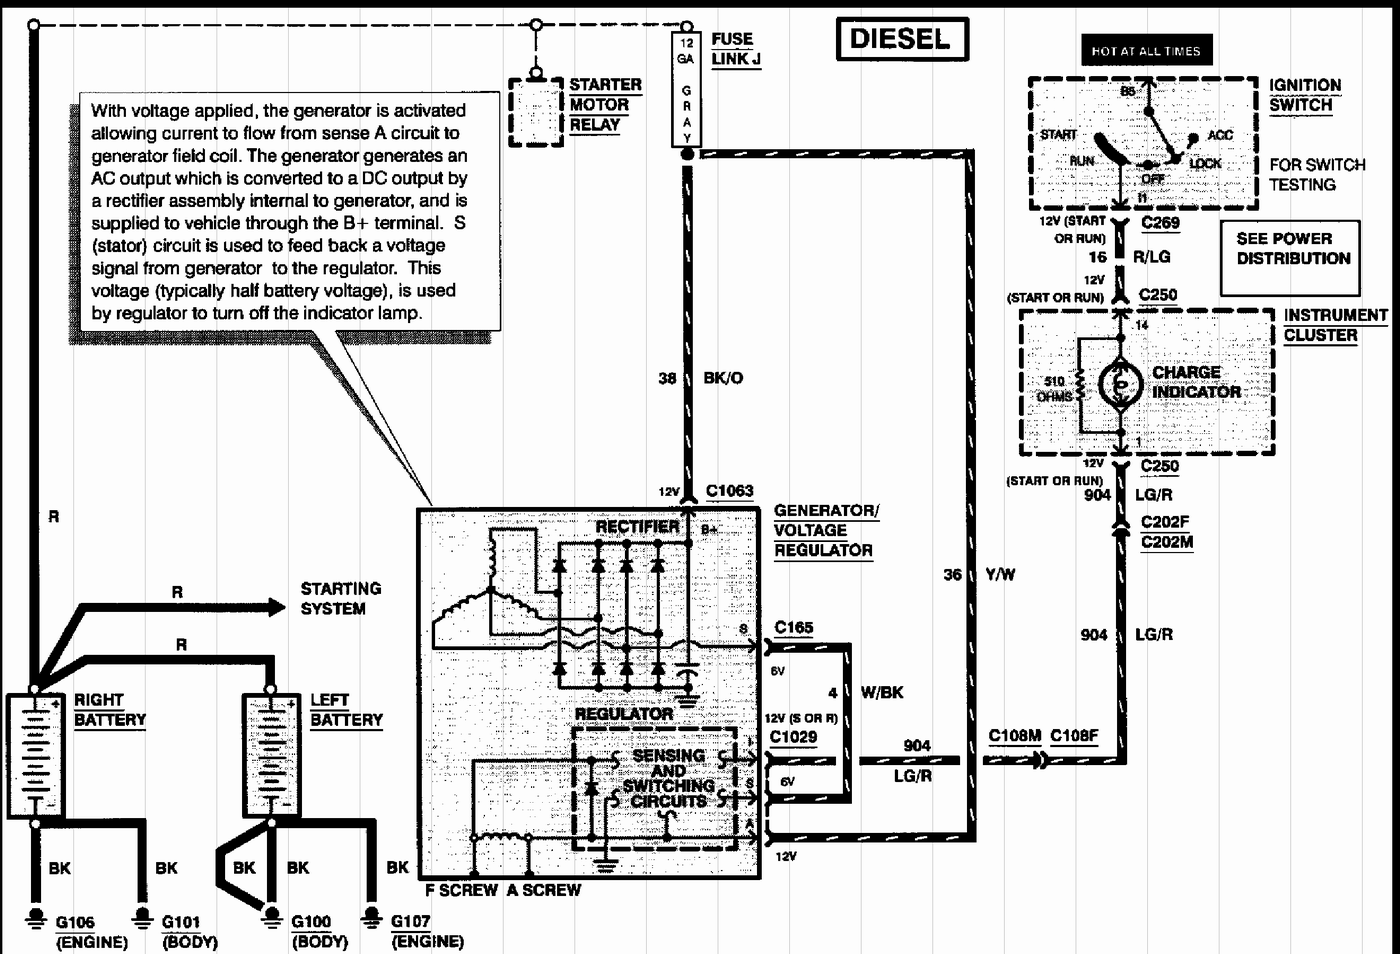 medium resolution of 73 powerstroke wiring harness wiring diagram options f250 7 3l wiring diagram 1997